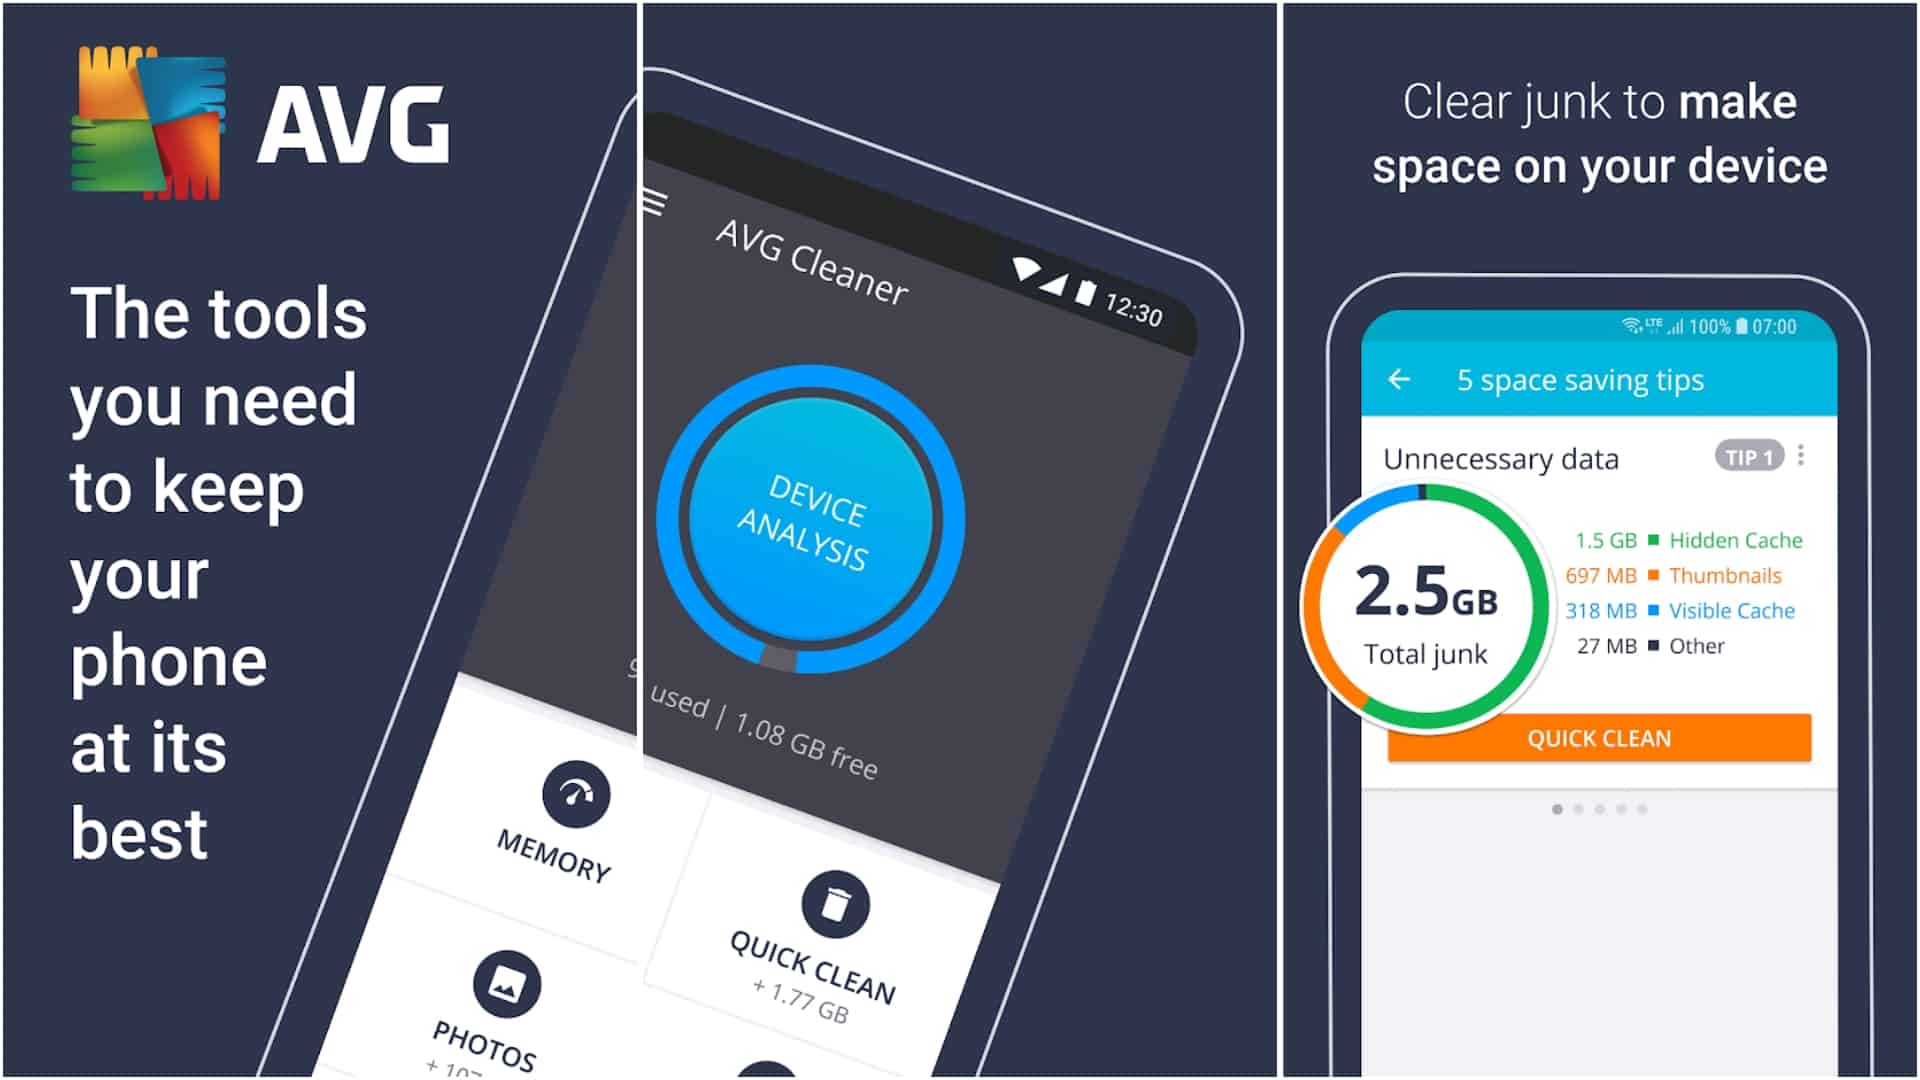 AVG Cleaner app image May 2020